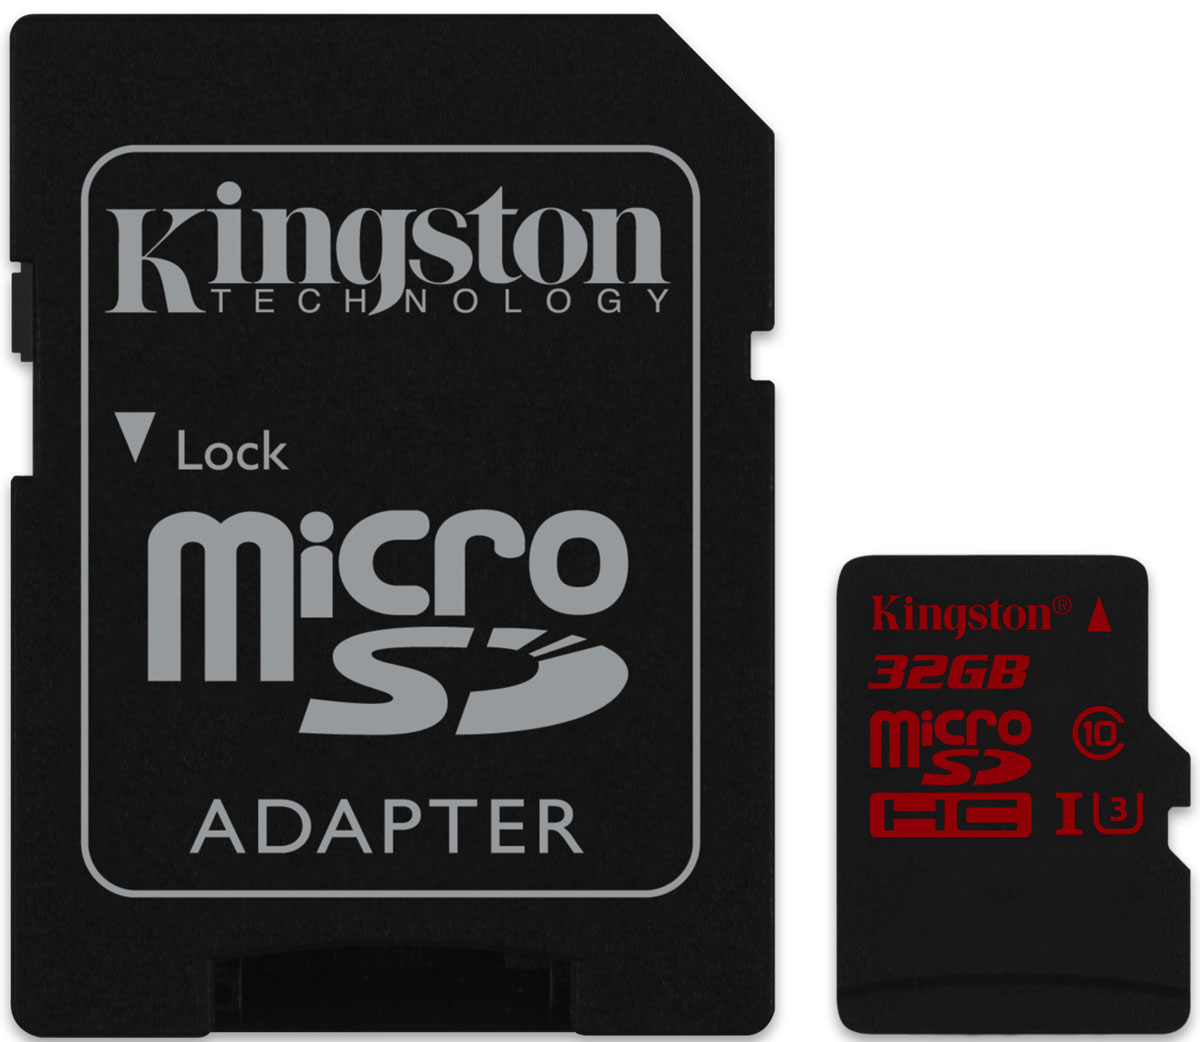 Kingston microSDHC Class 10 U3 UHS-I 32GB карта памяти с адаптером карта памяти microsdhc sony sr16uyat 10cl